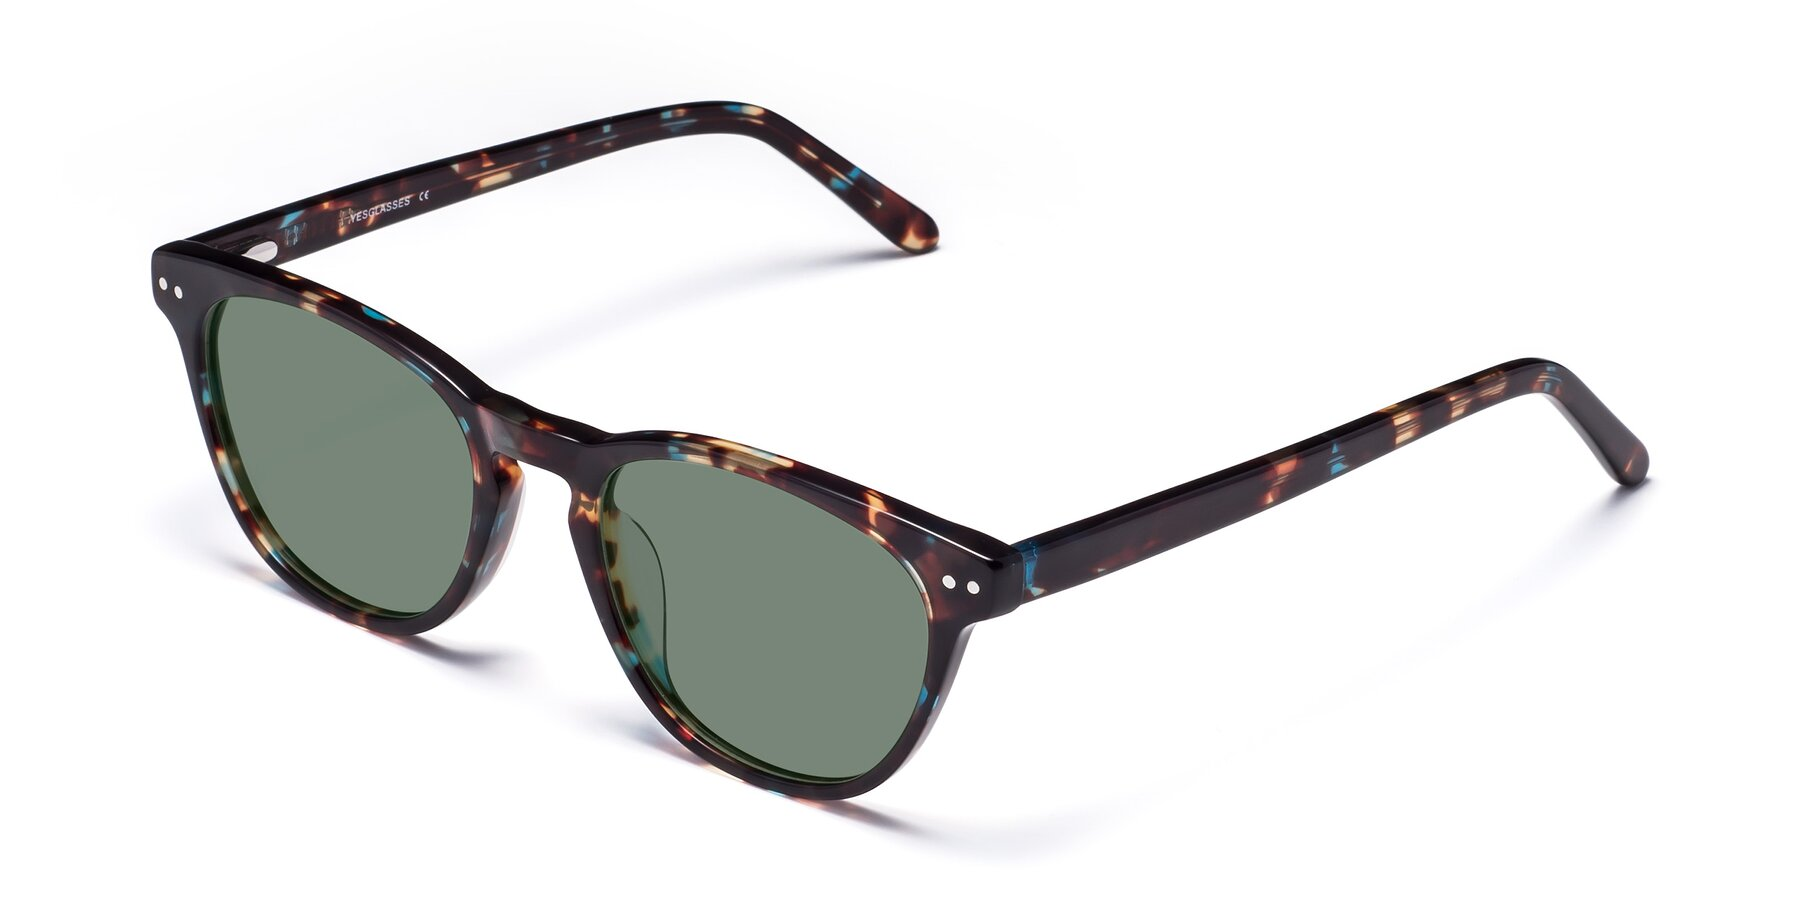 Angle of Blaze in Tortoise-Blue with Medium Green Tinted Lenses